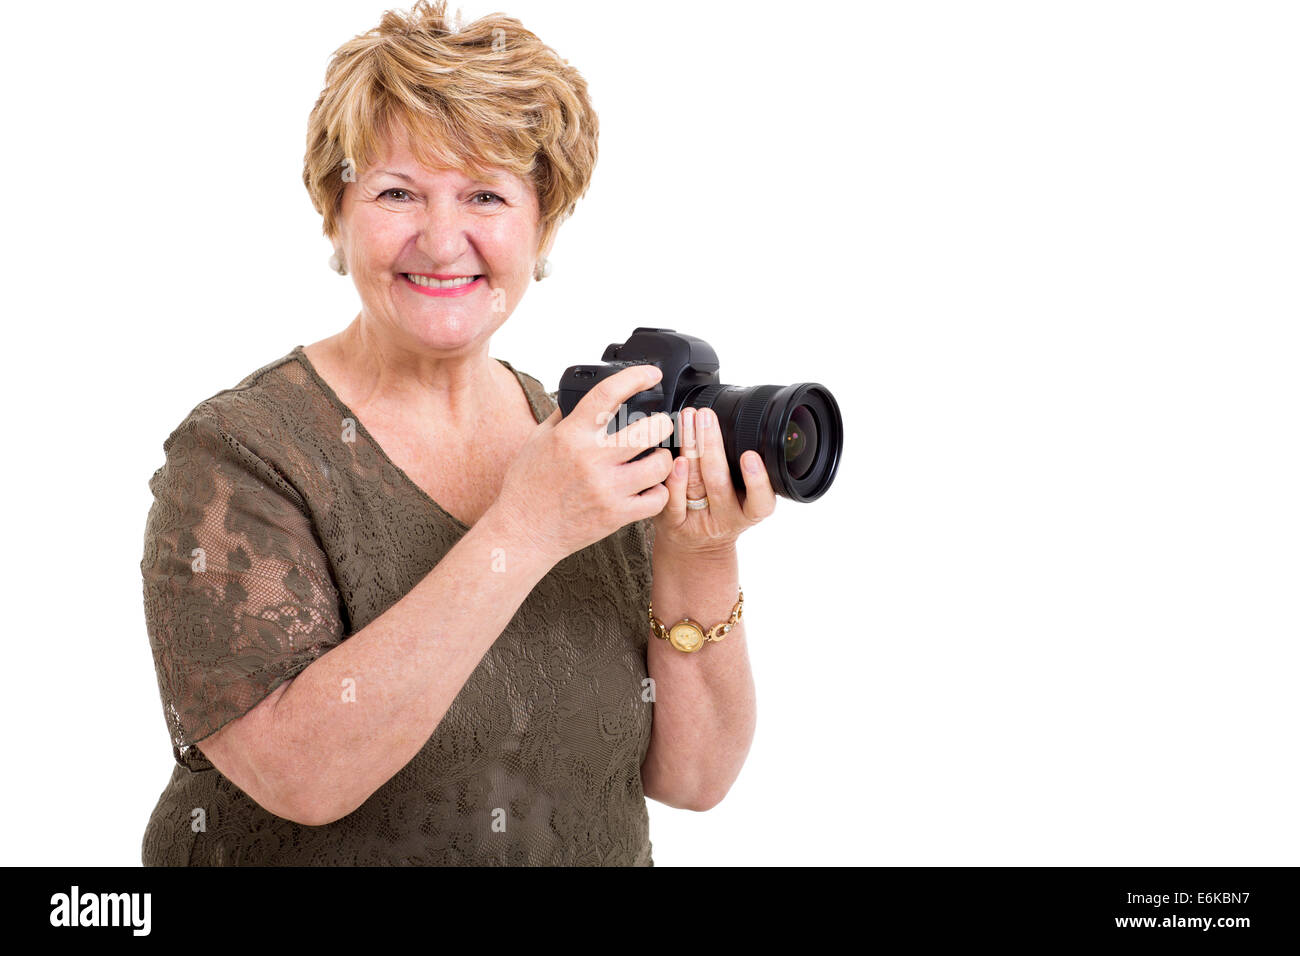 cheerful senior woman holding a digital SLR camera over white background - Stock Image